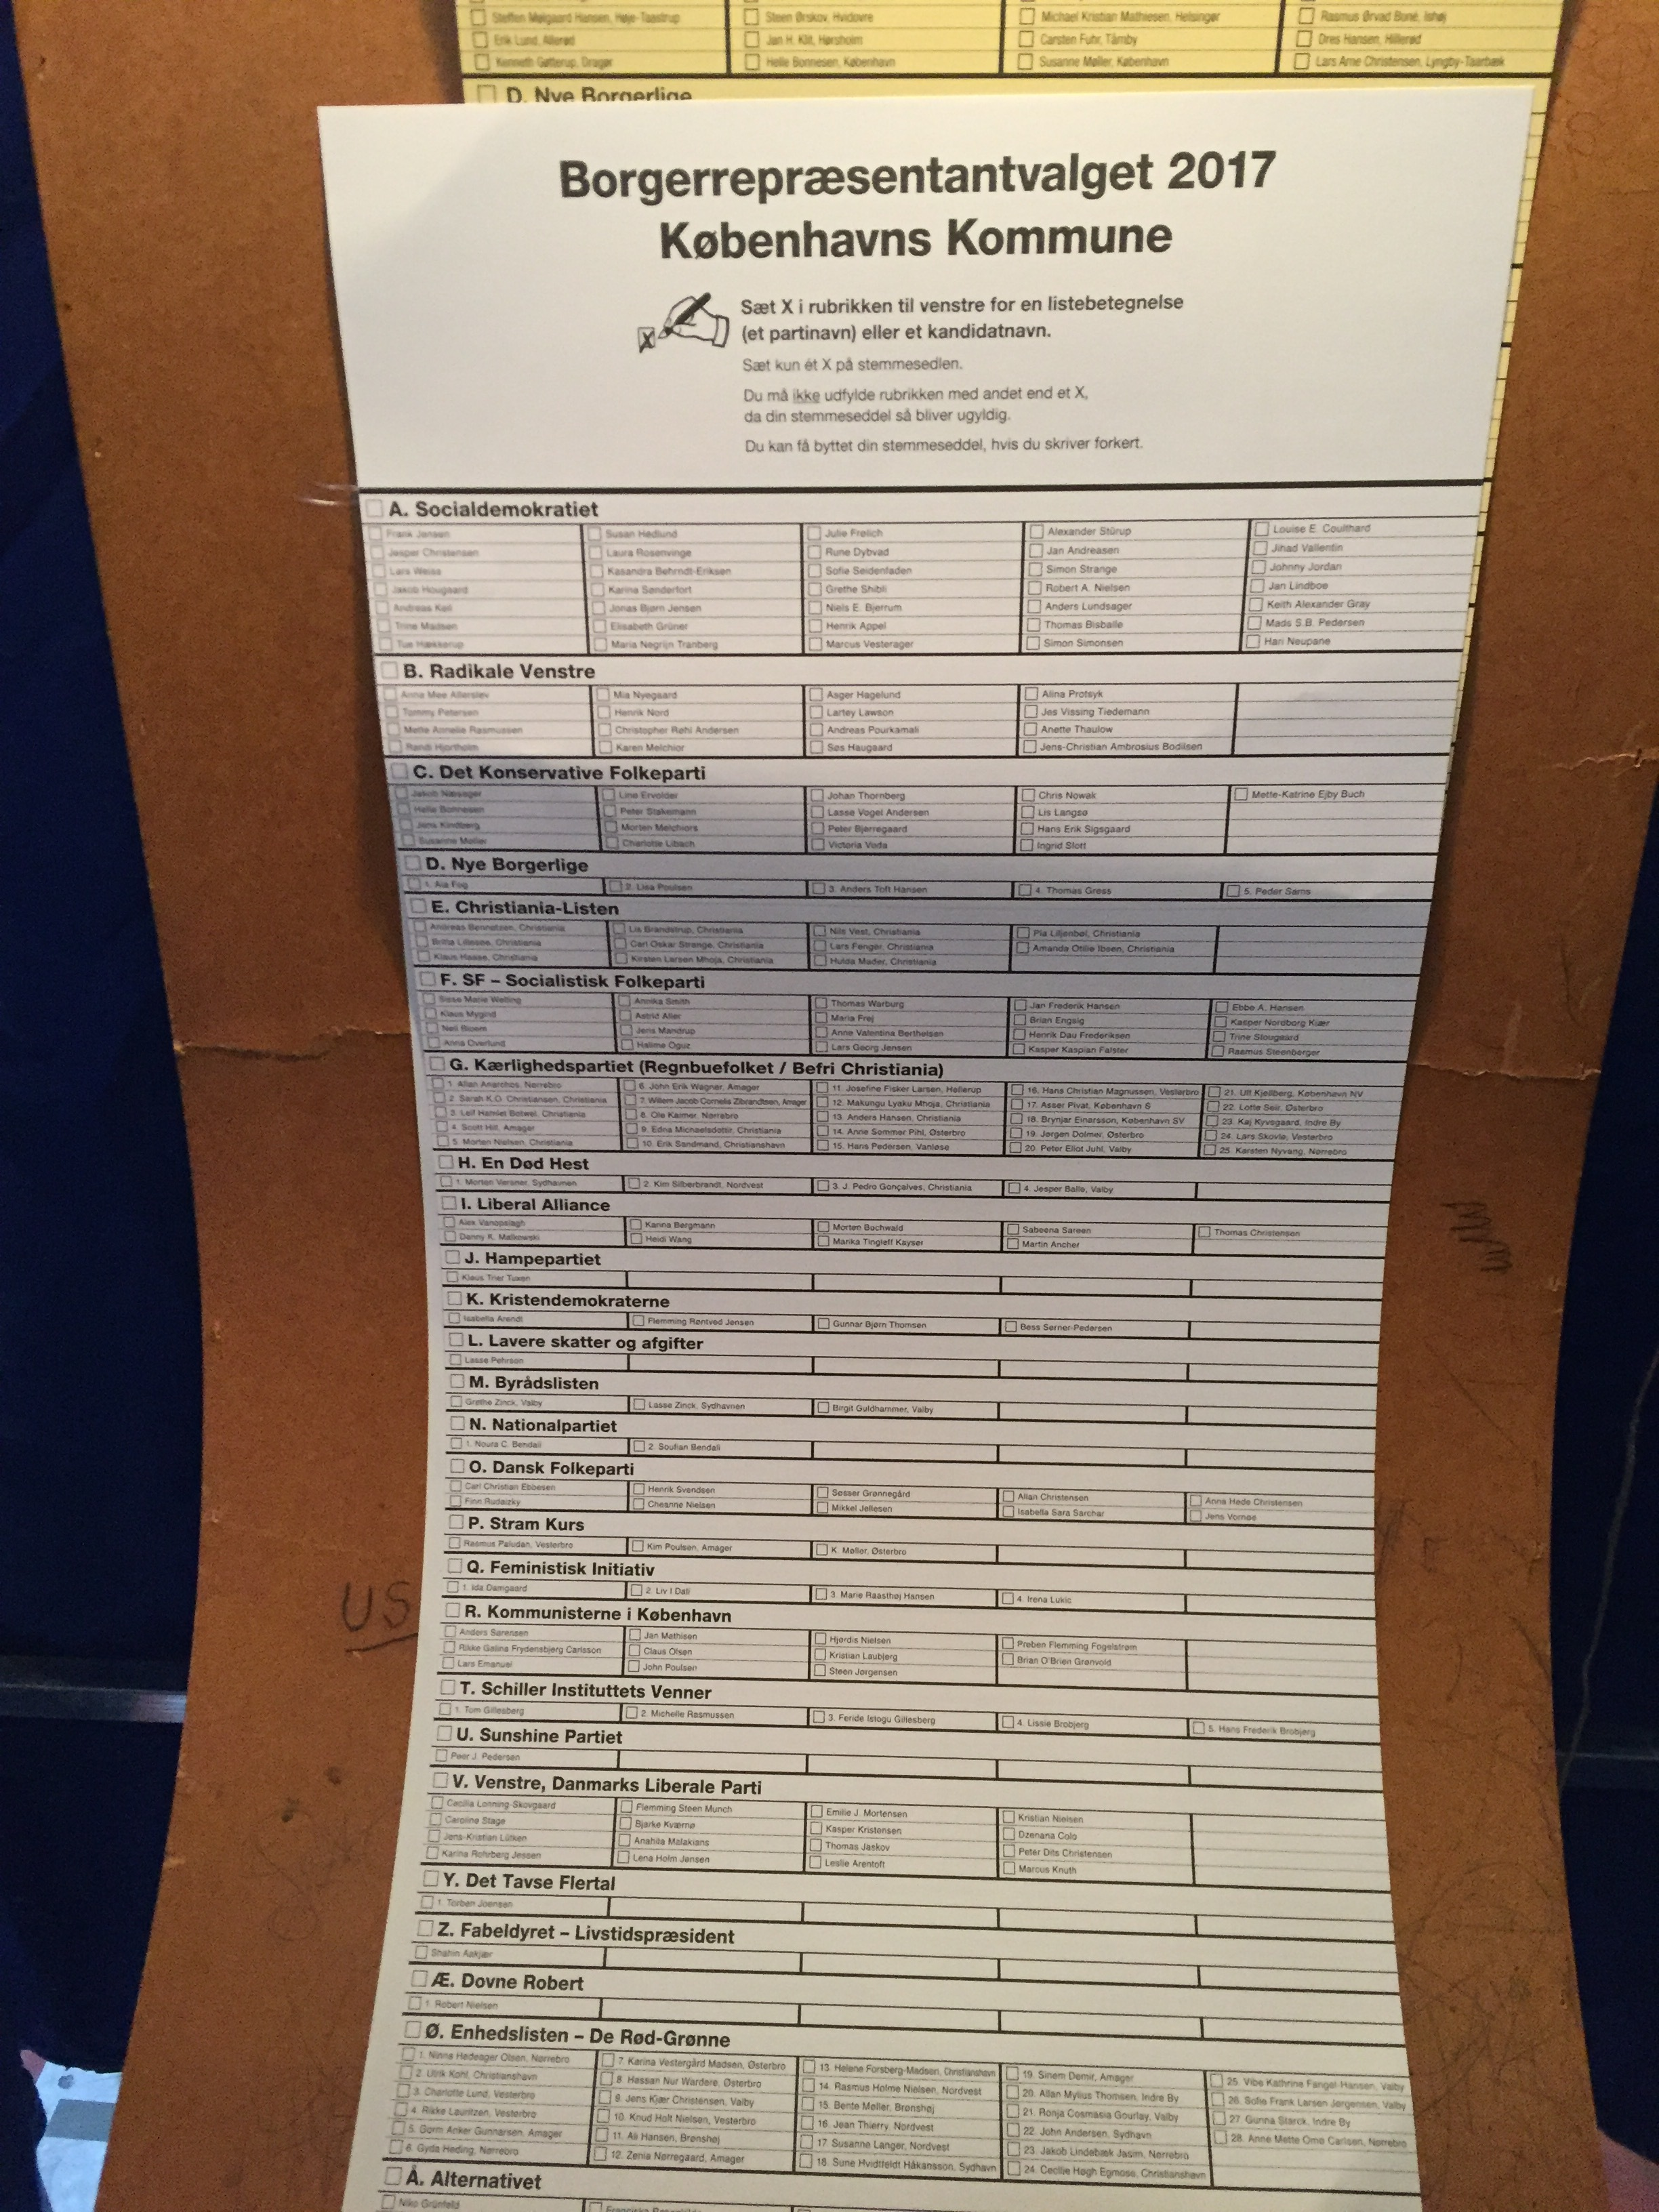 The long list of voting opportunities includes 'The Sunshine Party', 'A Dead Horse' and 'The Silent Majority'